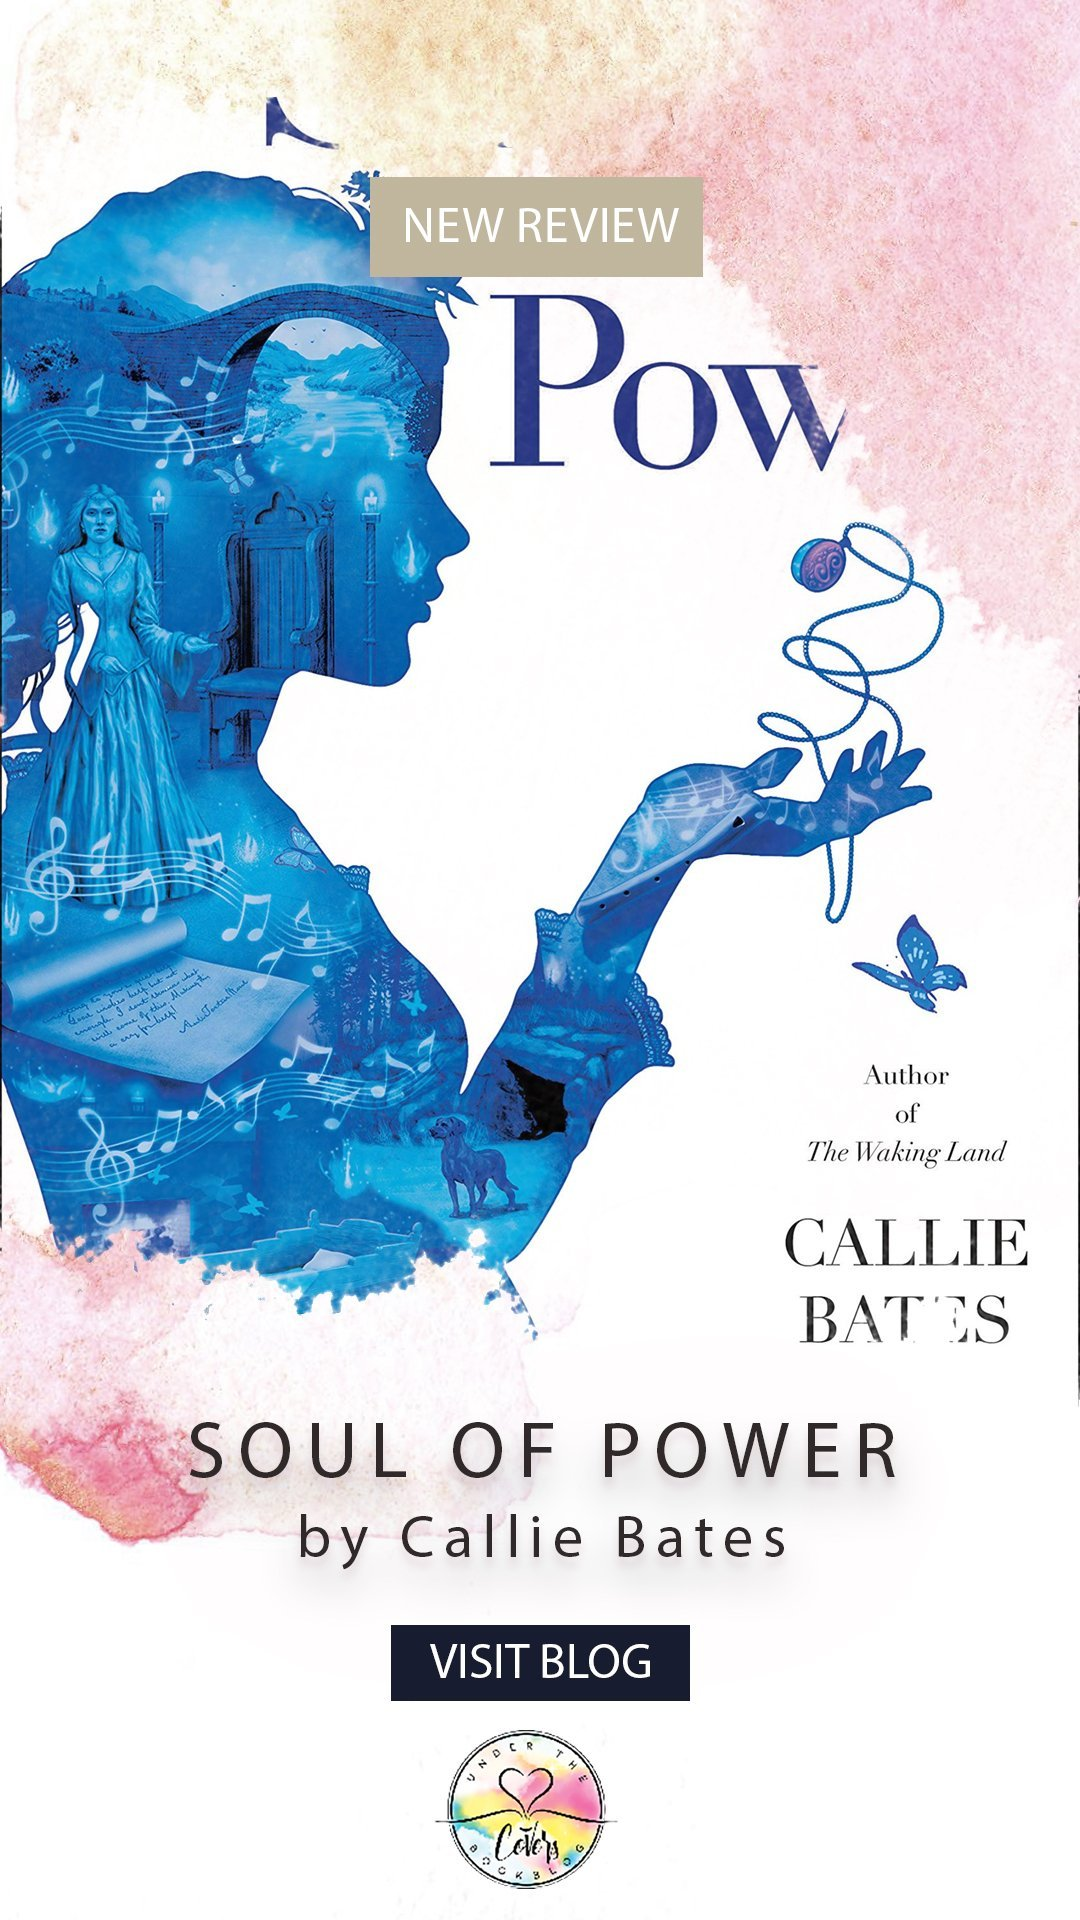 ARC Review: The Soul of Power by Callie Bates